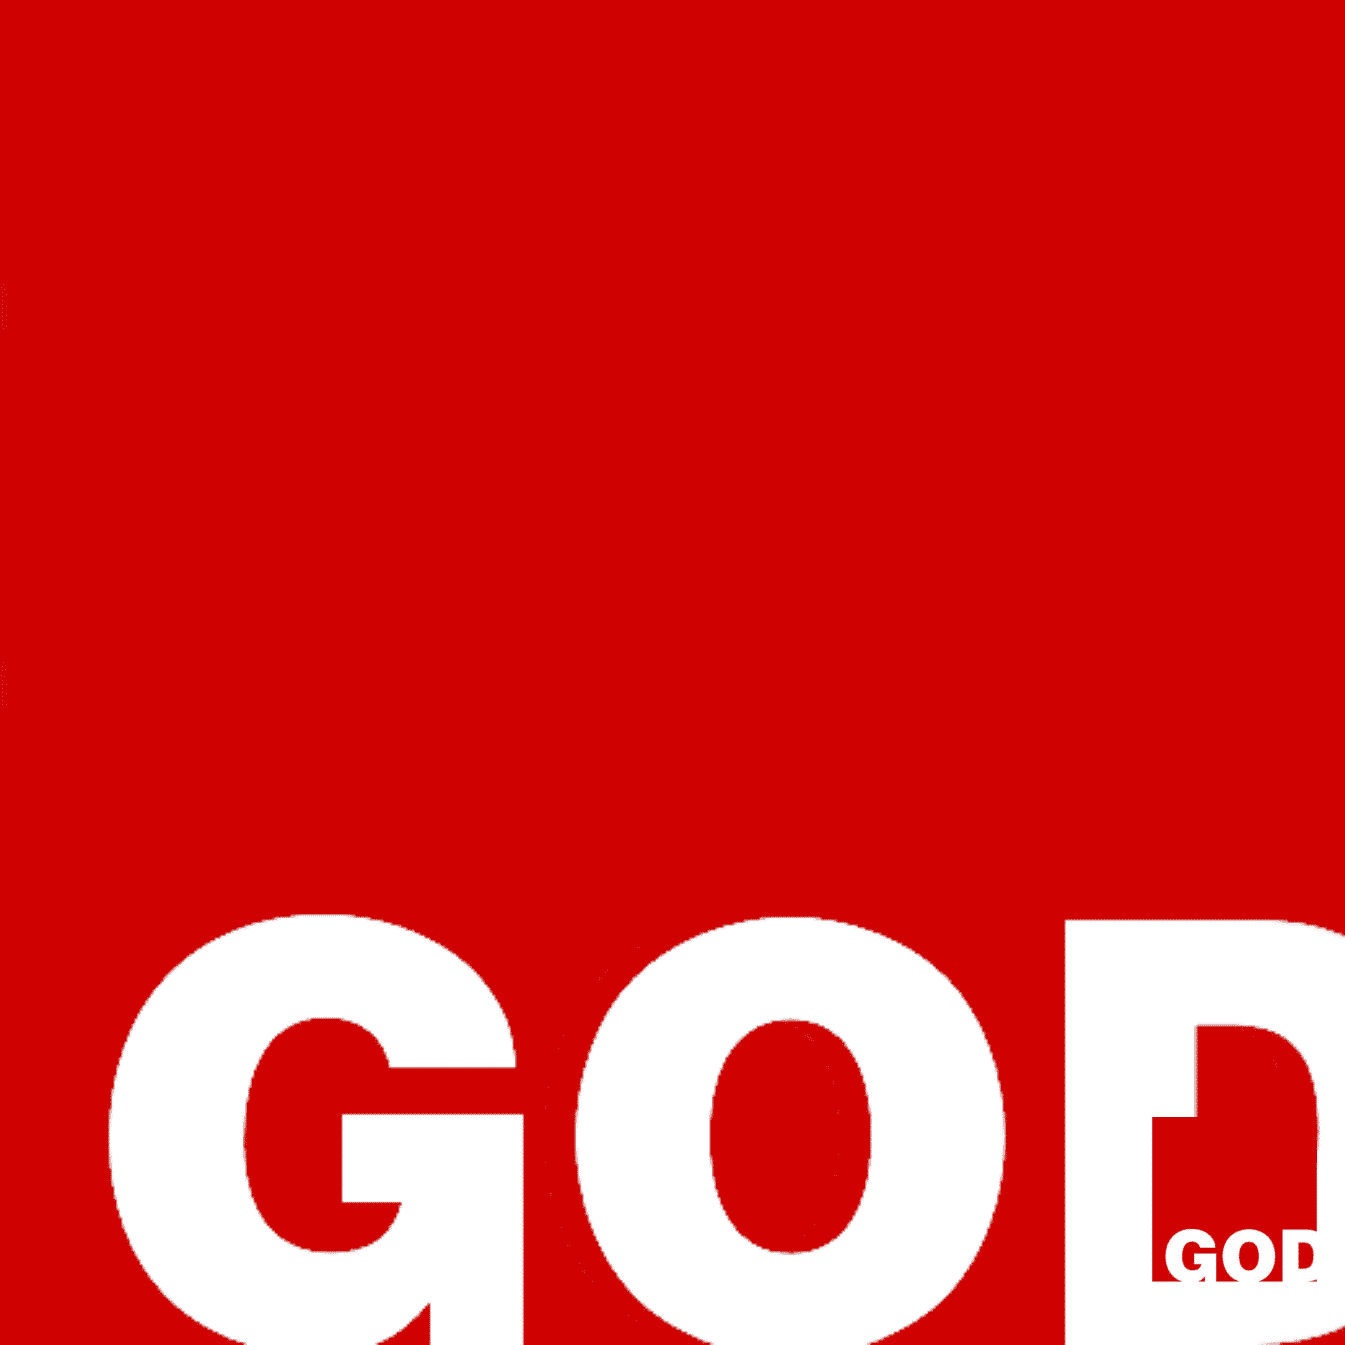 GODINTEREST - Christian digital media website exploring faith, culture and life